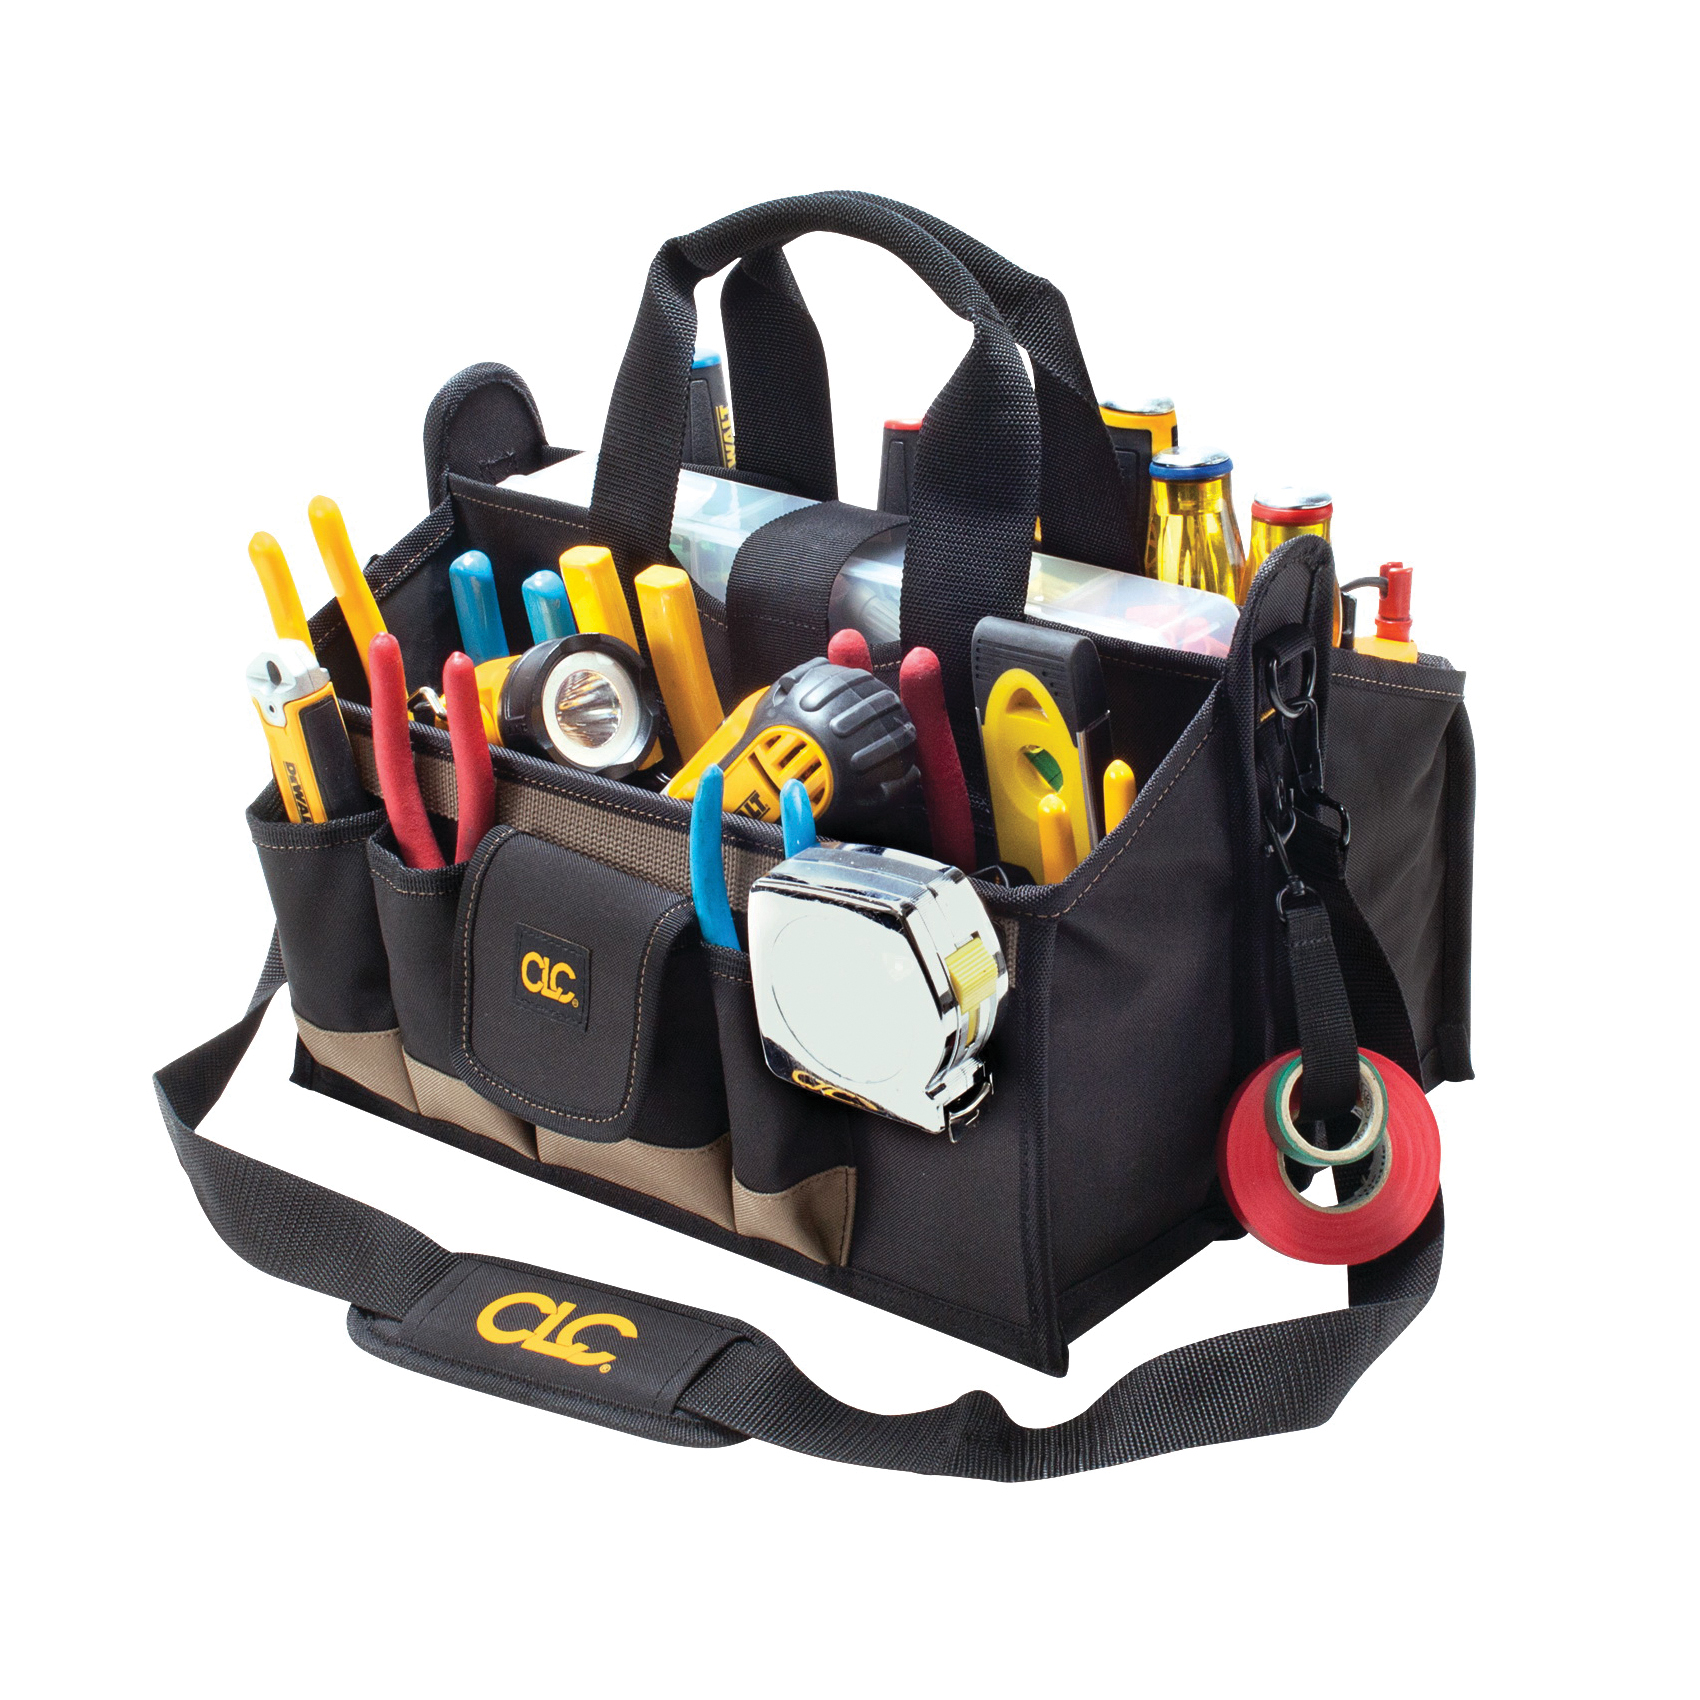 Picture of CLC Tool Works 1529 Center Tray Tool Bag, 9 in W, 9 in D, 16 in H, 17 -Pocket, Polyester